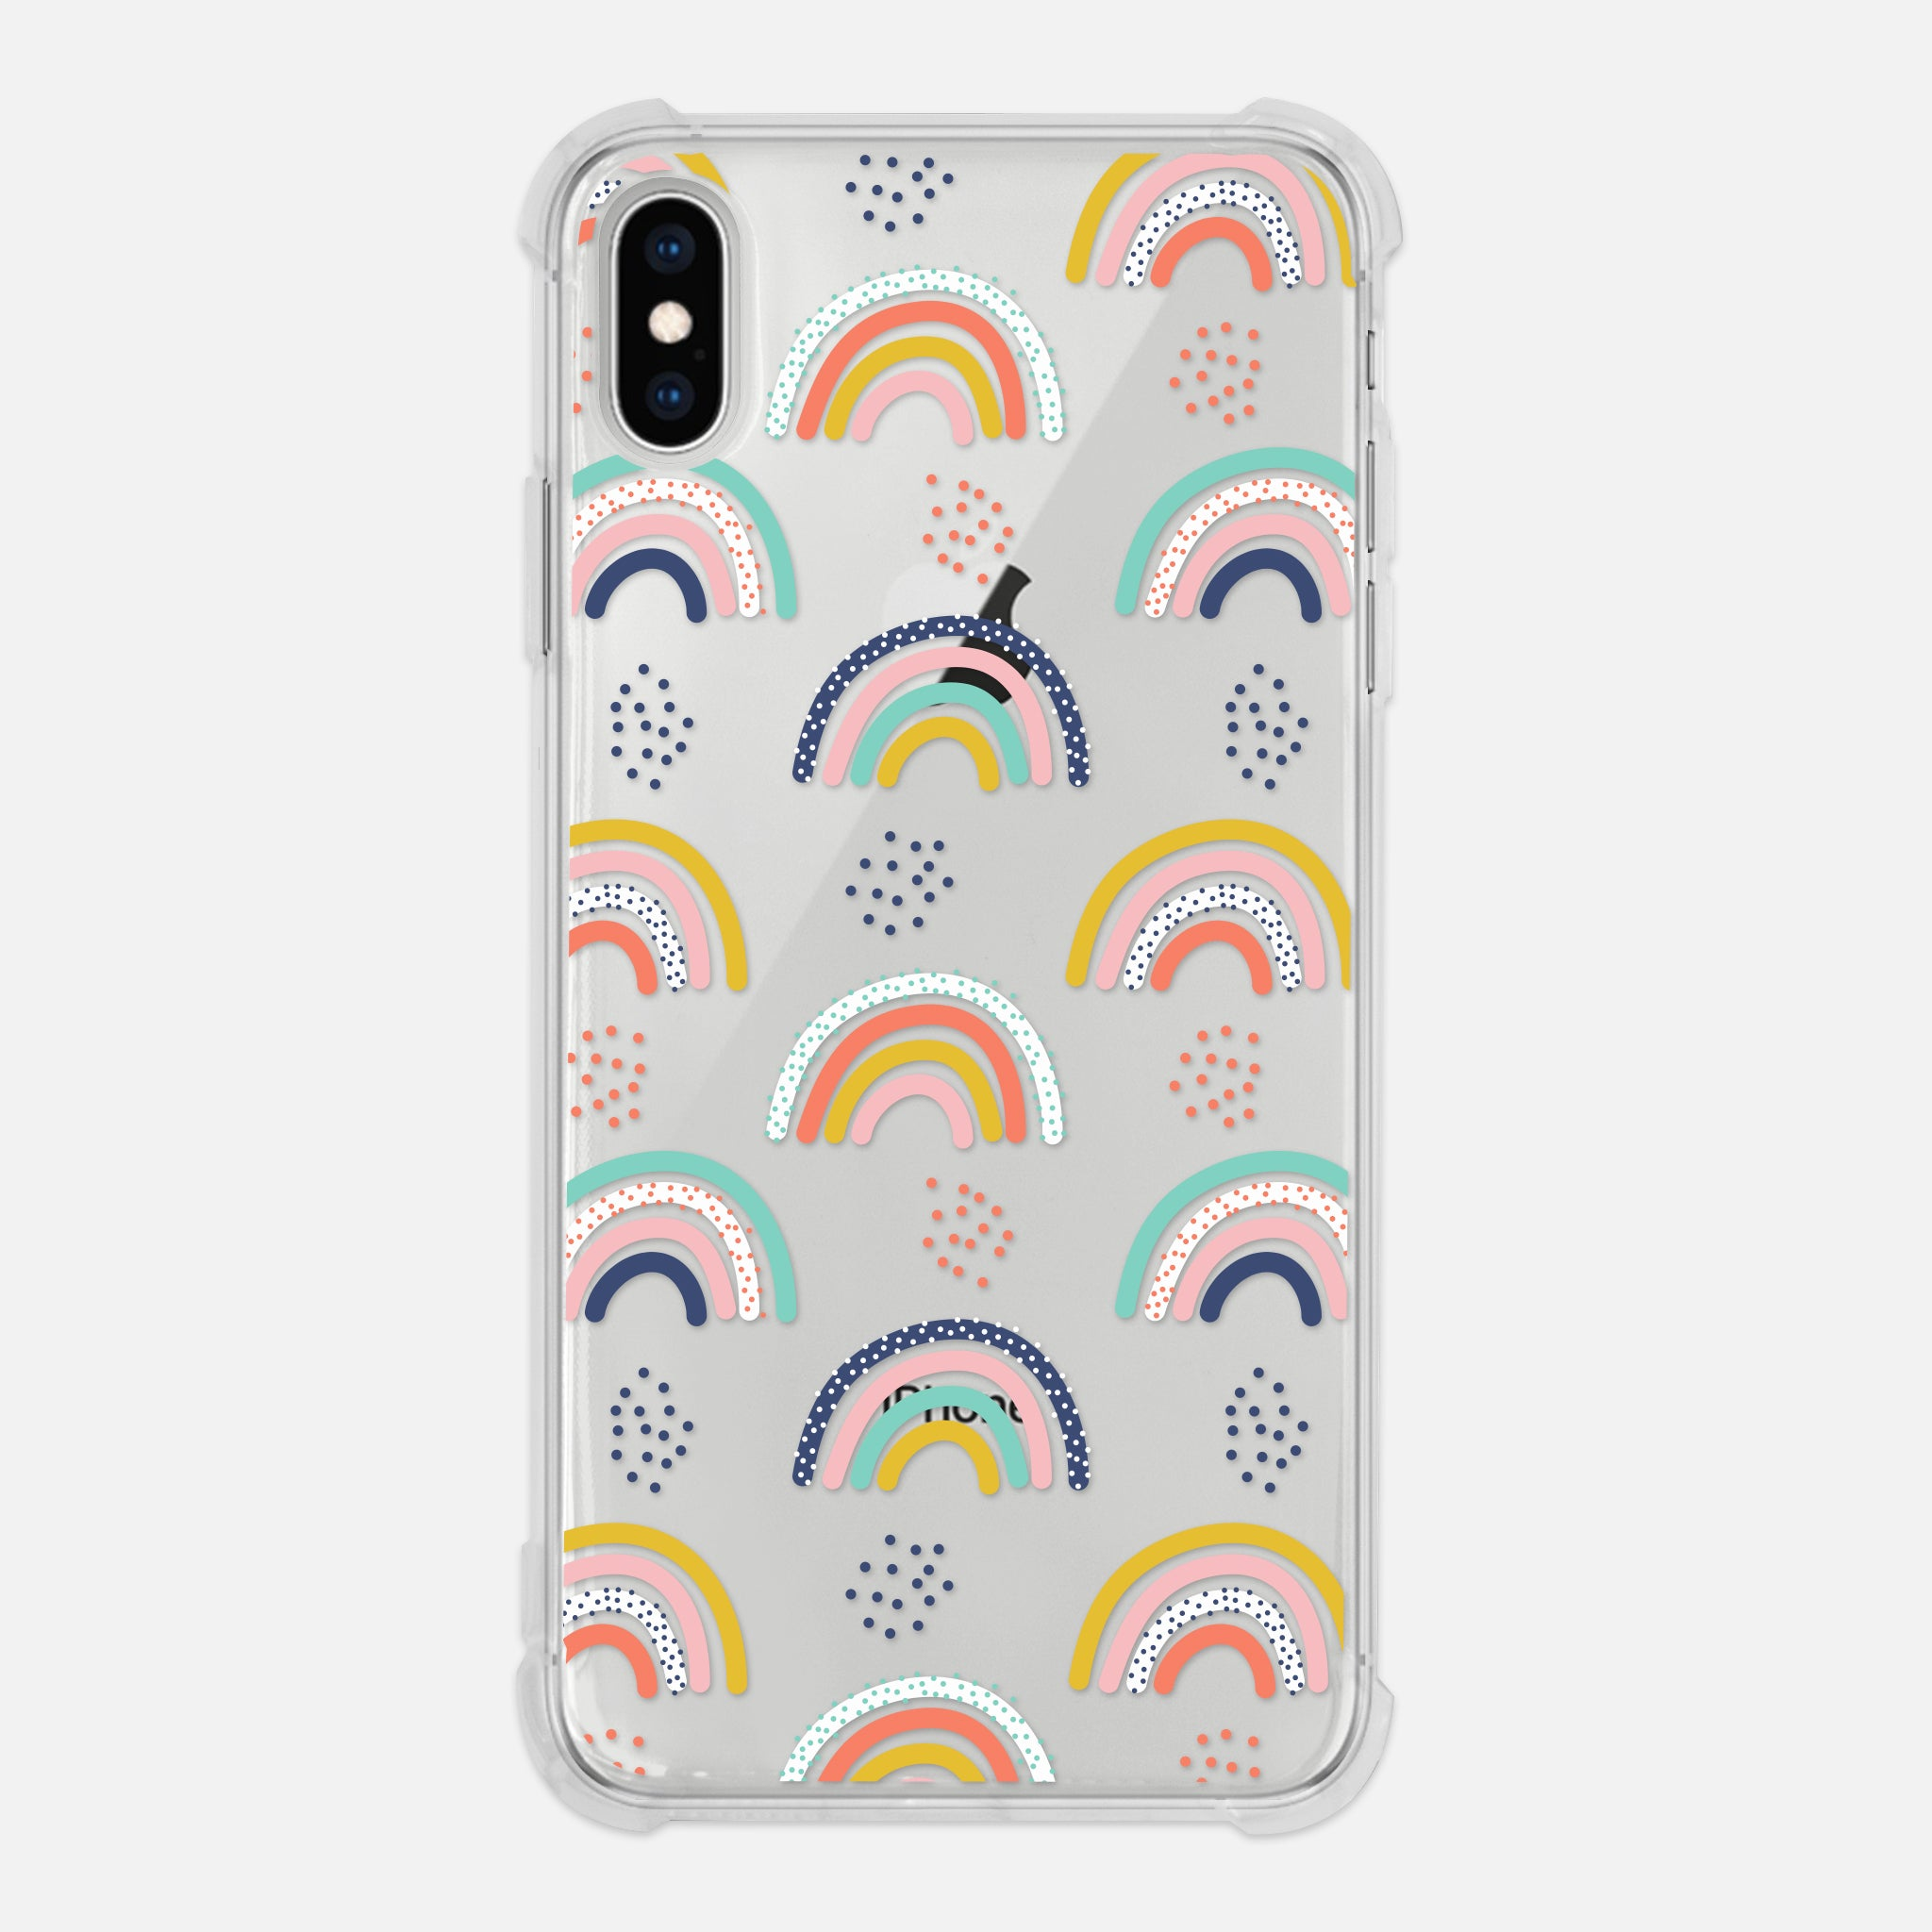 cf519eefc5b96 Rainbow Dots Abstract Clear iPhone Case for XR XS Max X 8 7 6 6s ...